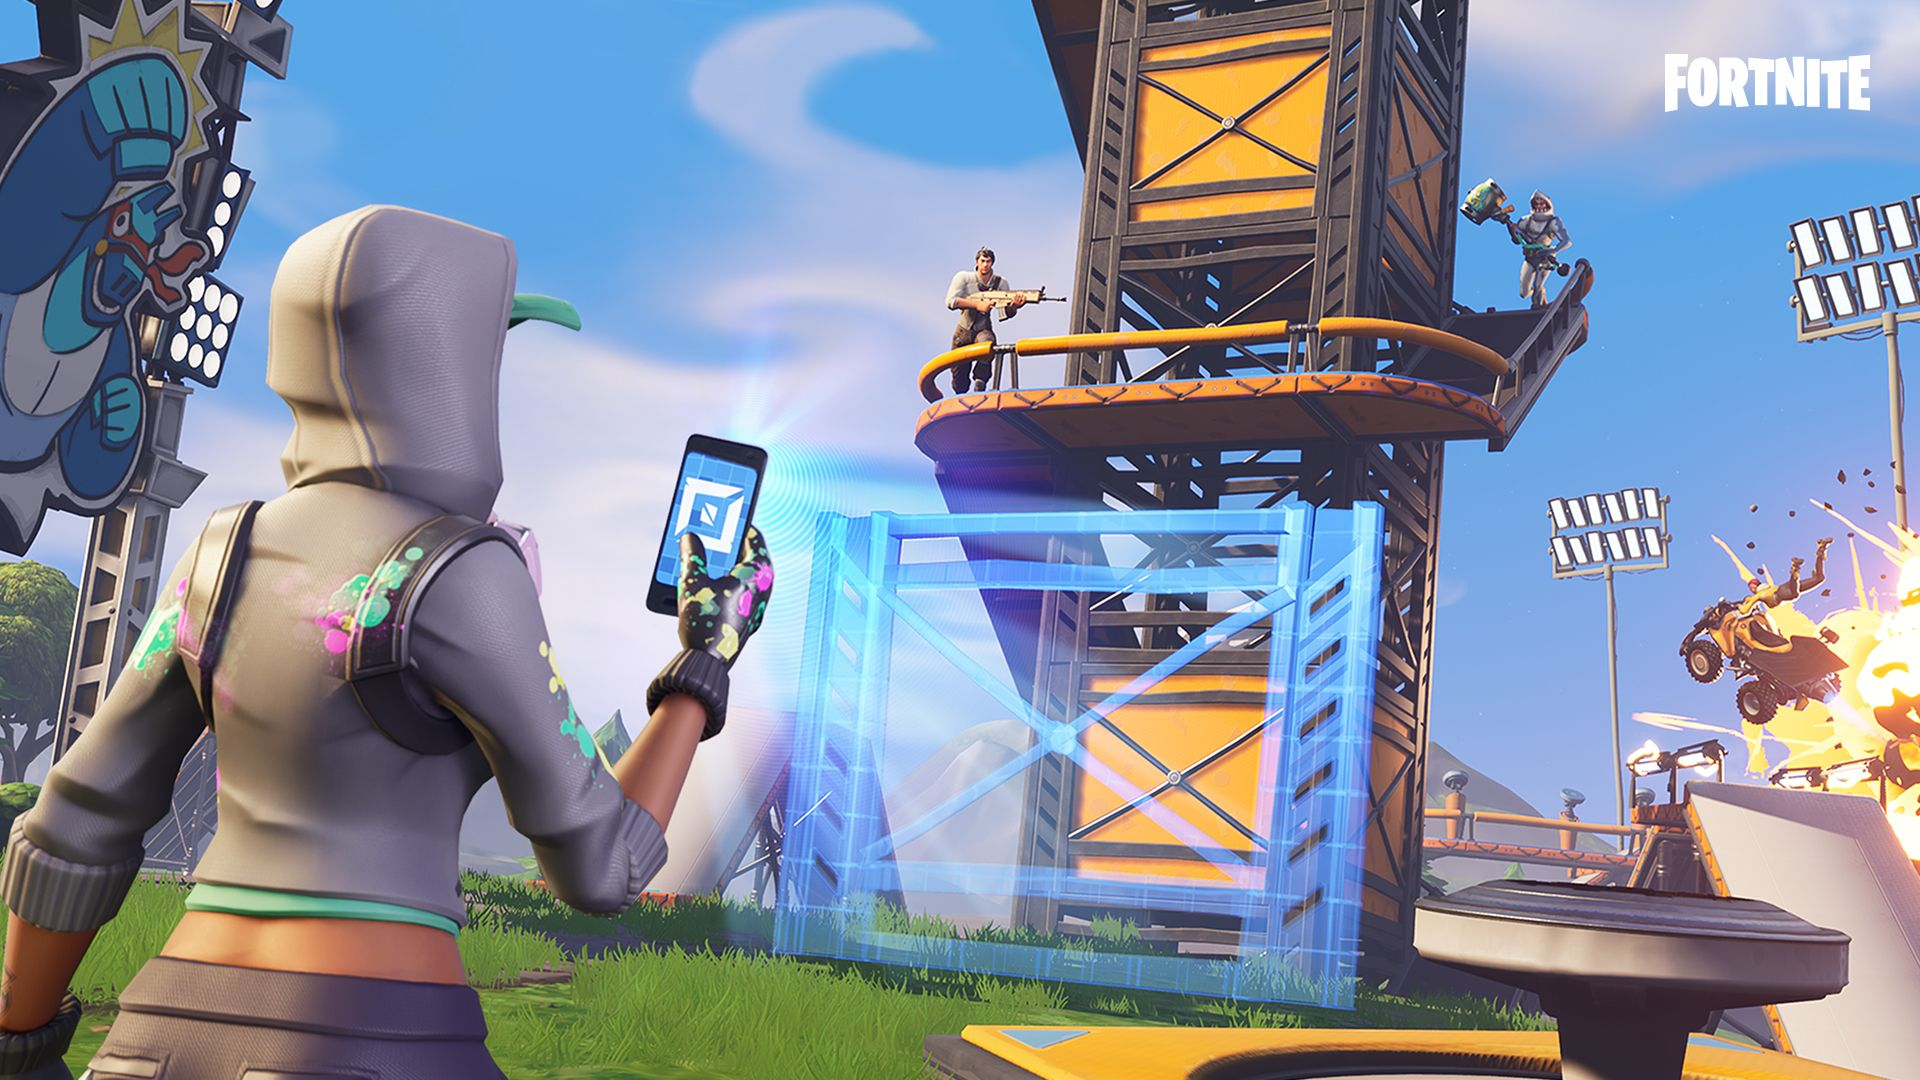 State Of Development Fortnite Creative Epic Games Have Just Released A Blog On Fortnite Creative Which Can Be Seen Below Heya Fort Fortnite Epic Games Epic